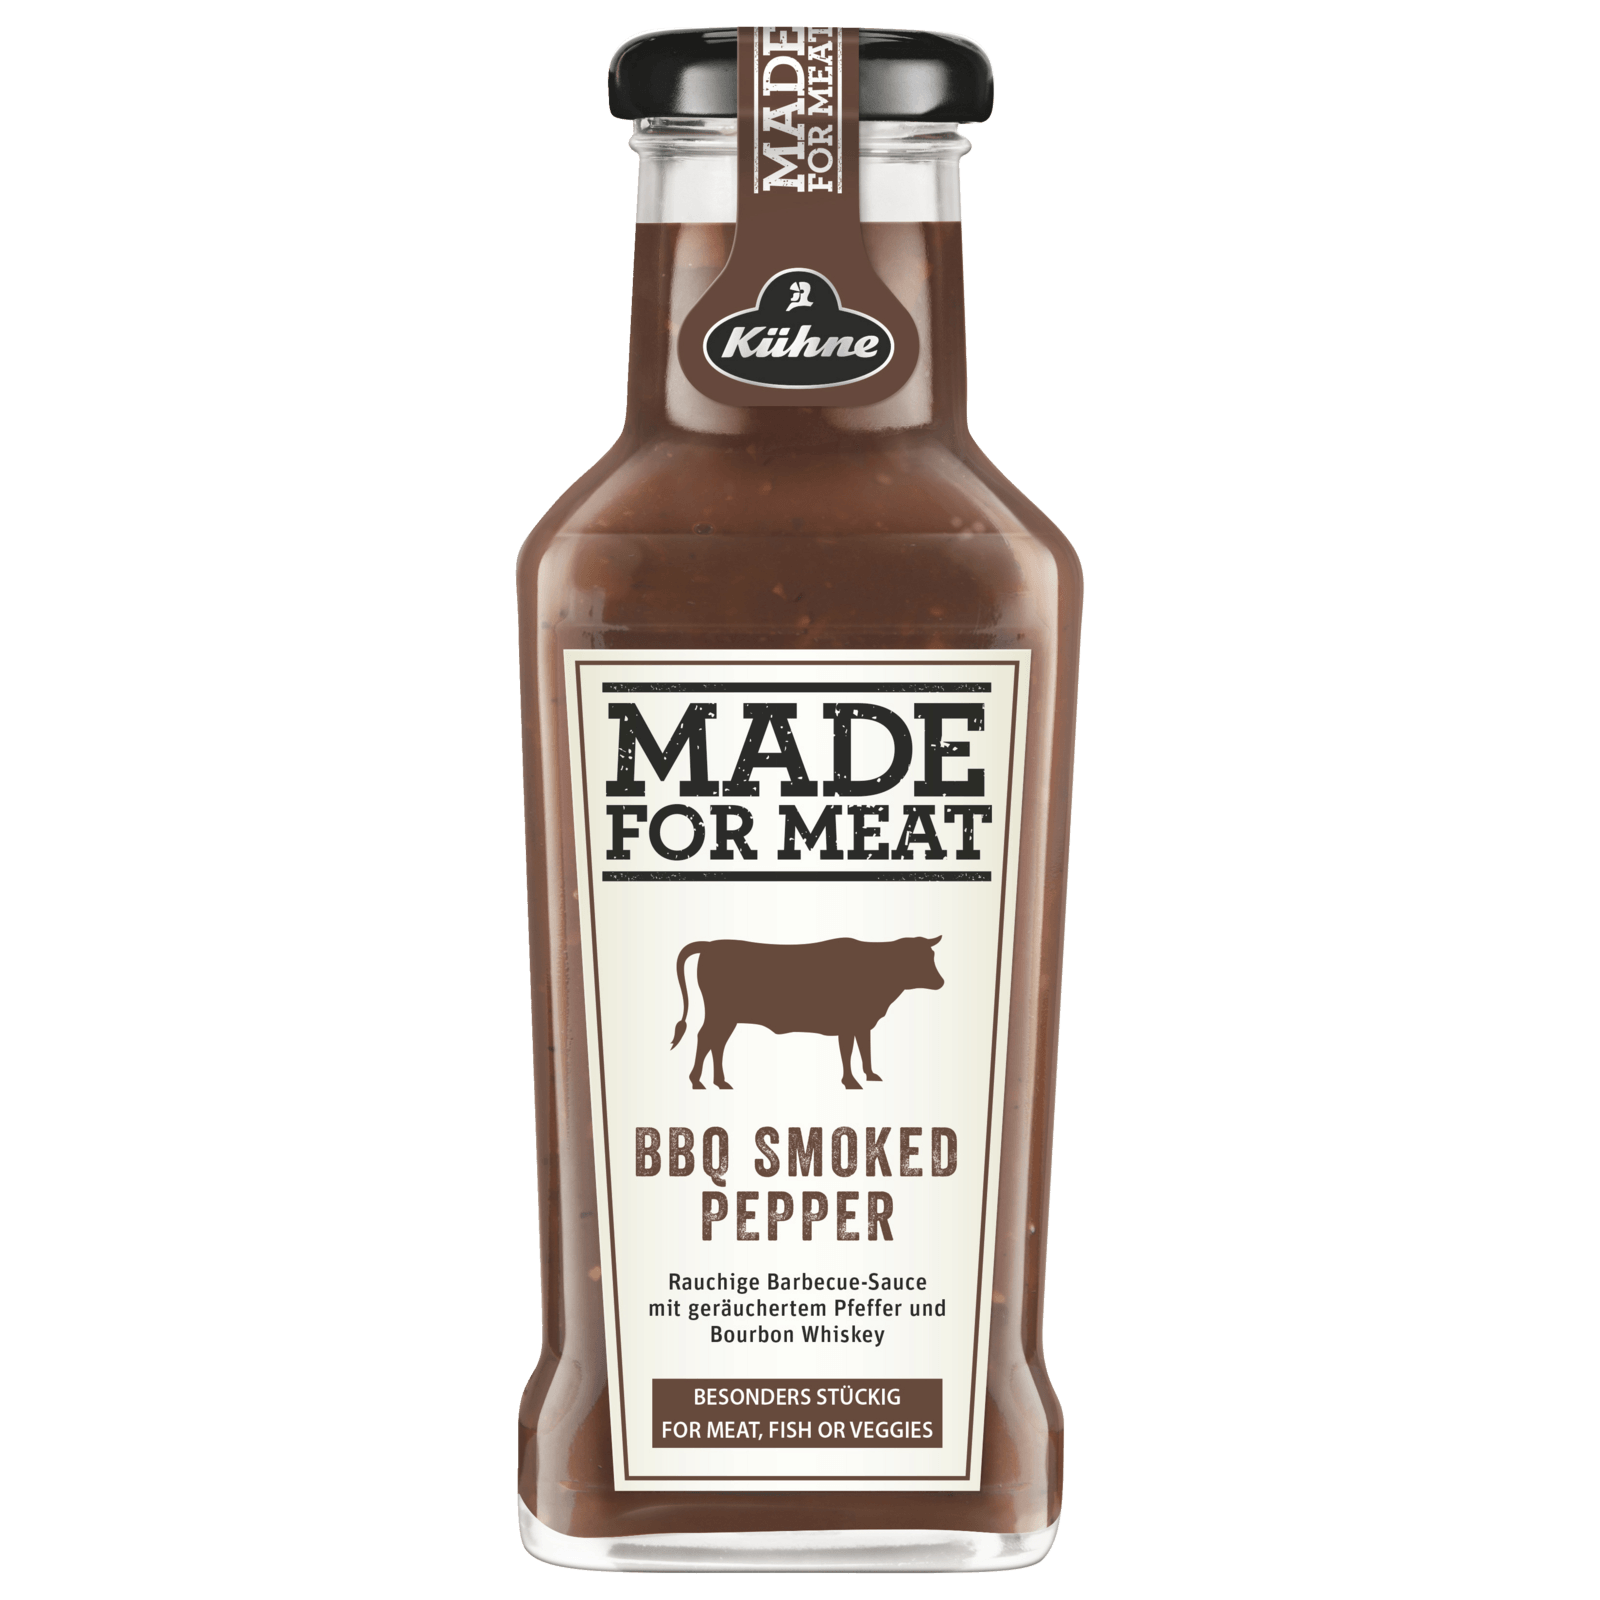 Kühne Made for Meat Smoked Pepper BBQ Sauce 235ml